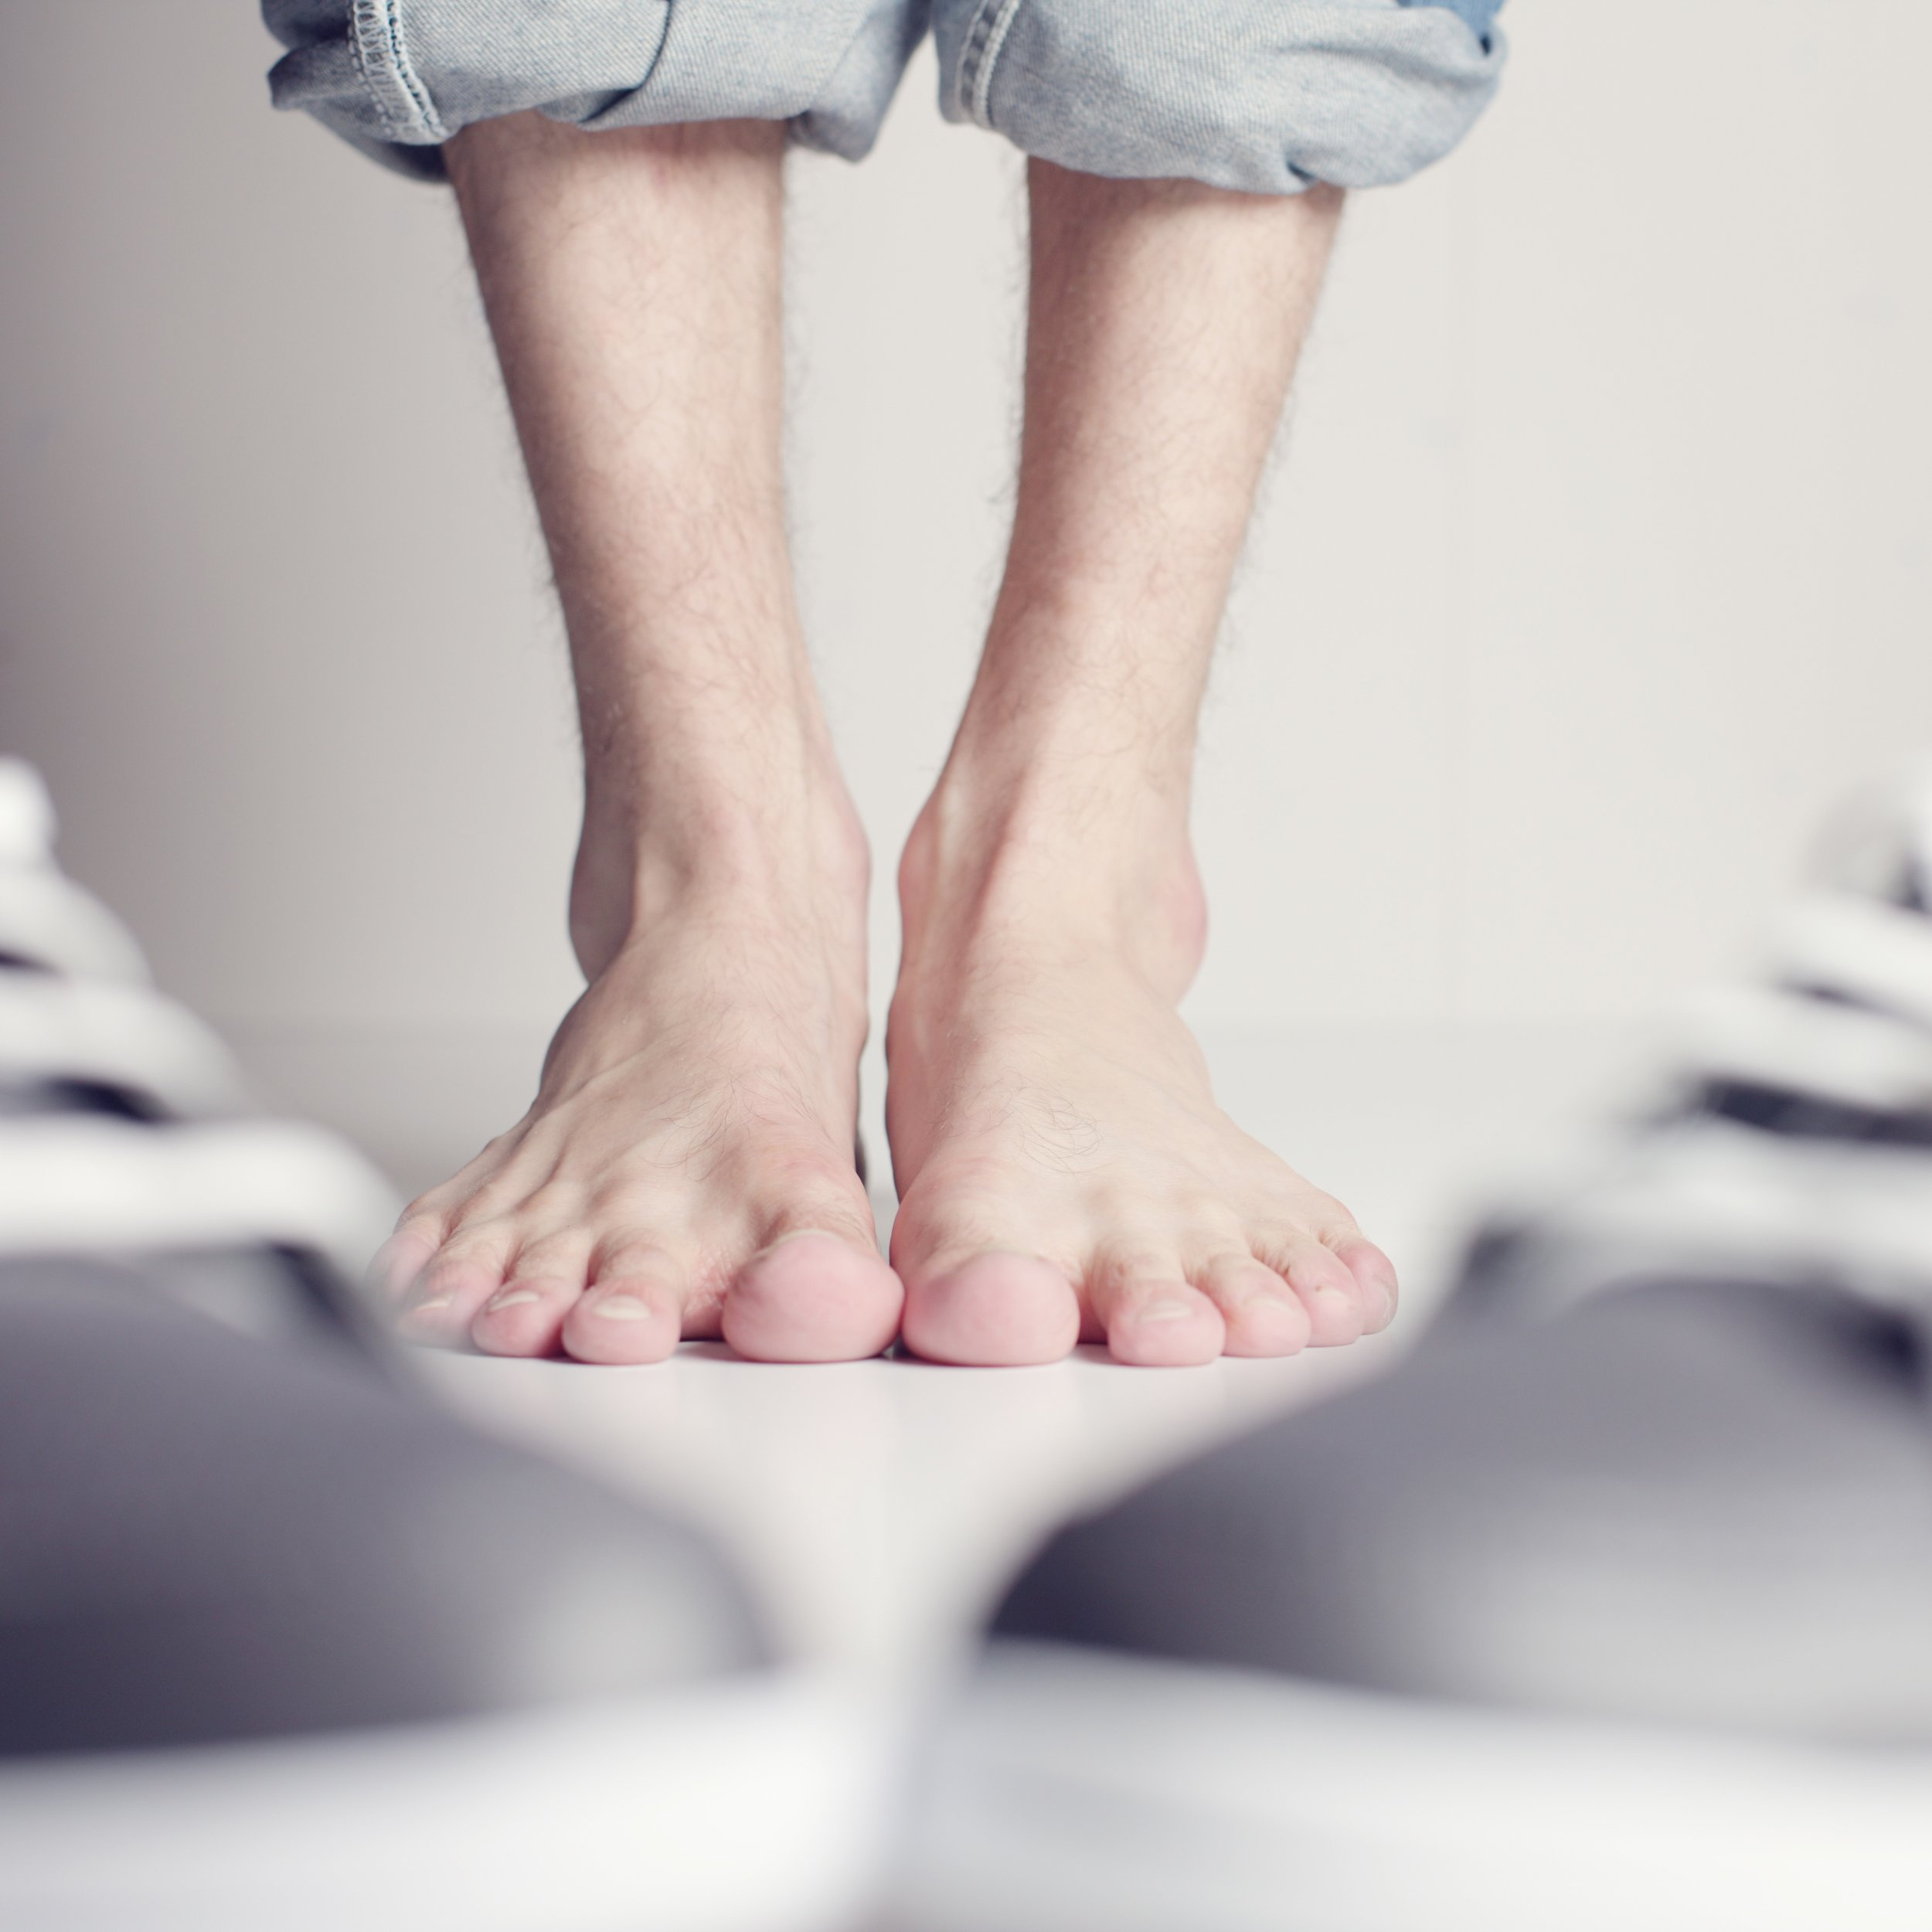 Release joint tension - Orthotics helps to realign foot and ankle bones to neutral positions.